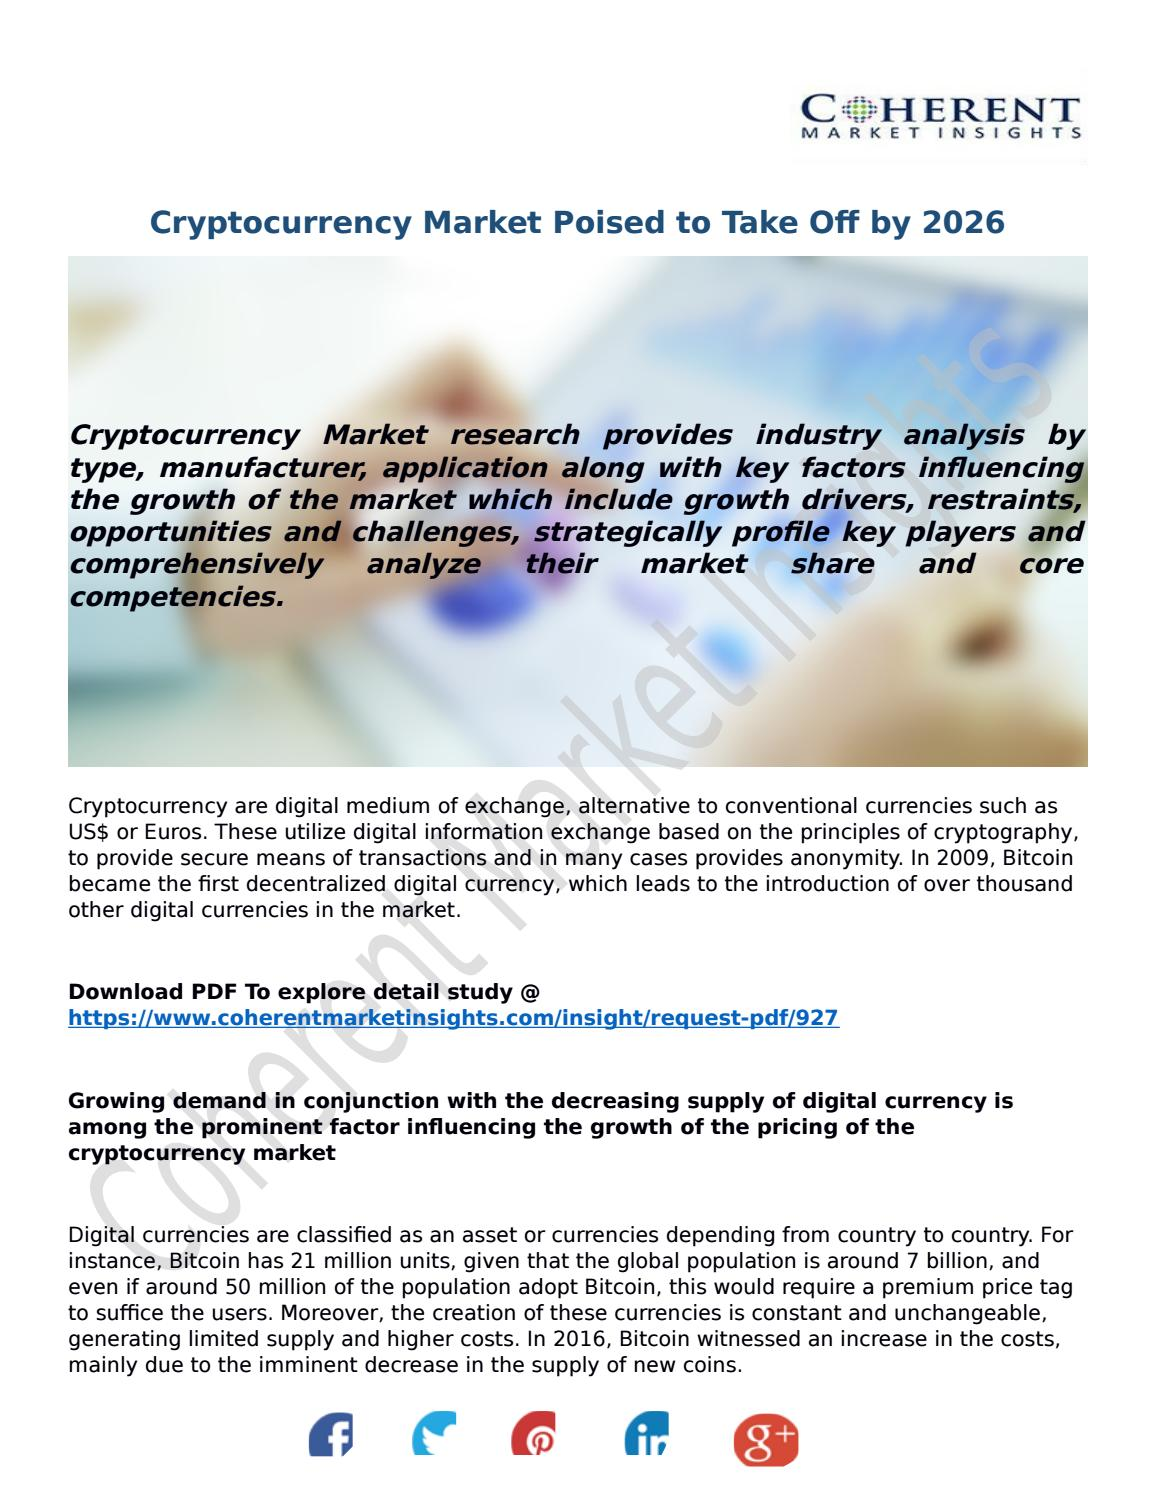 coherent market insights cryptocurrency mining